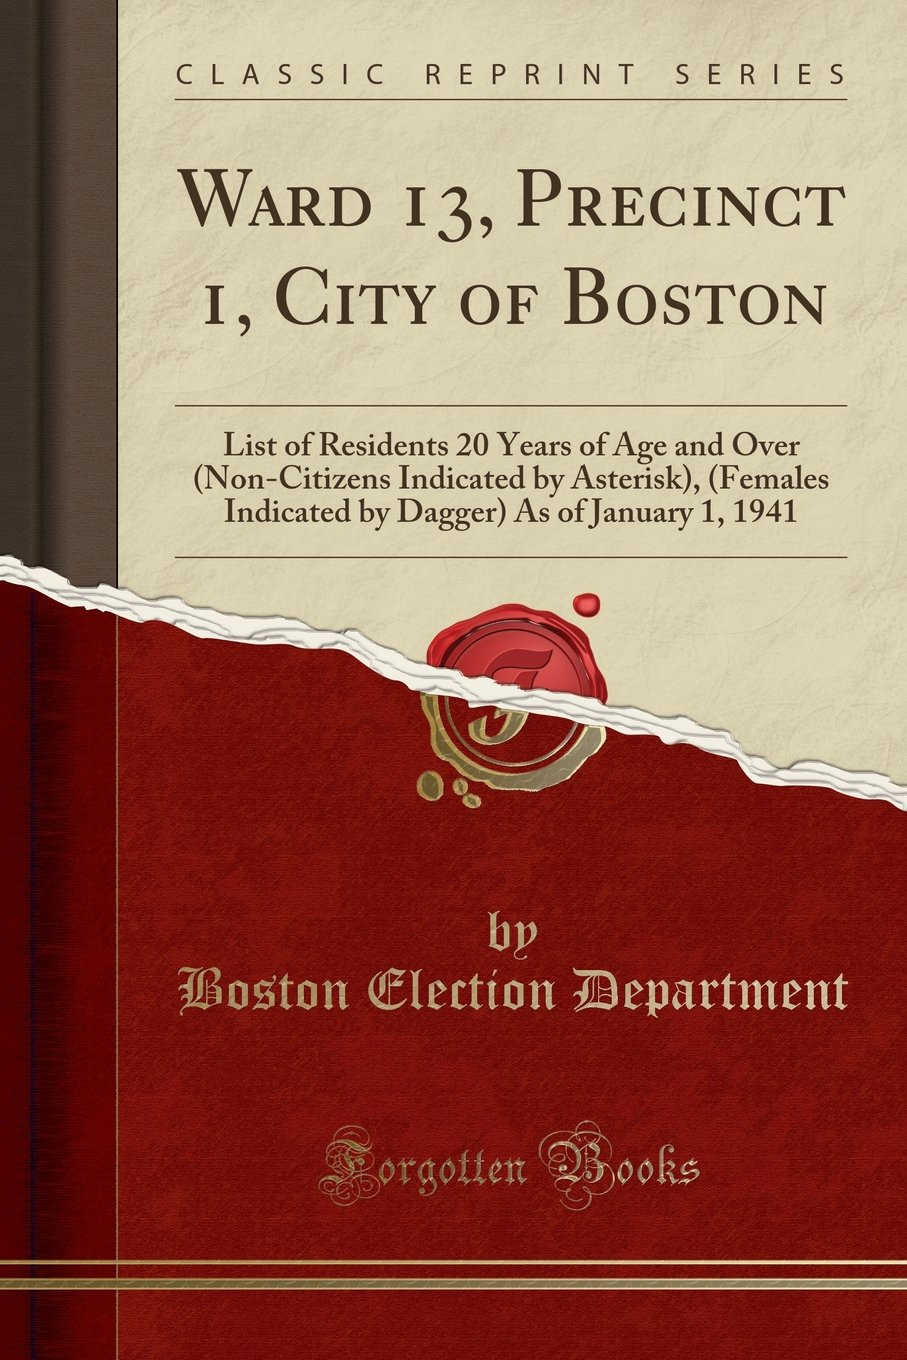 Download Ward 13, Precinct 1, City of Boston: List of Residents 20 Years of Age and Over (Non-Citizens Indicated by Asterisk), (Females Indicated by Dagger) As of January 1, 1941 (Classic Reprint) pdf